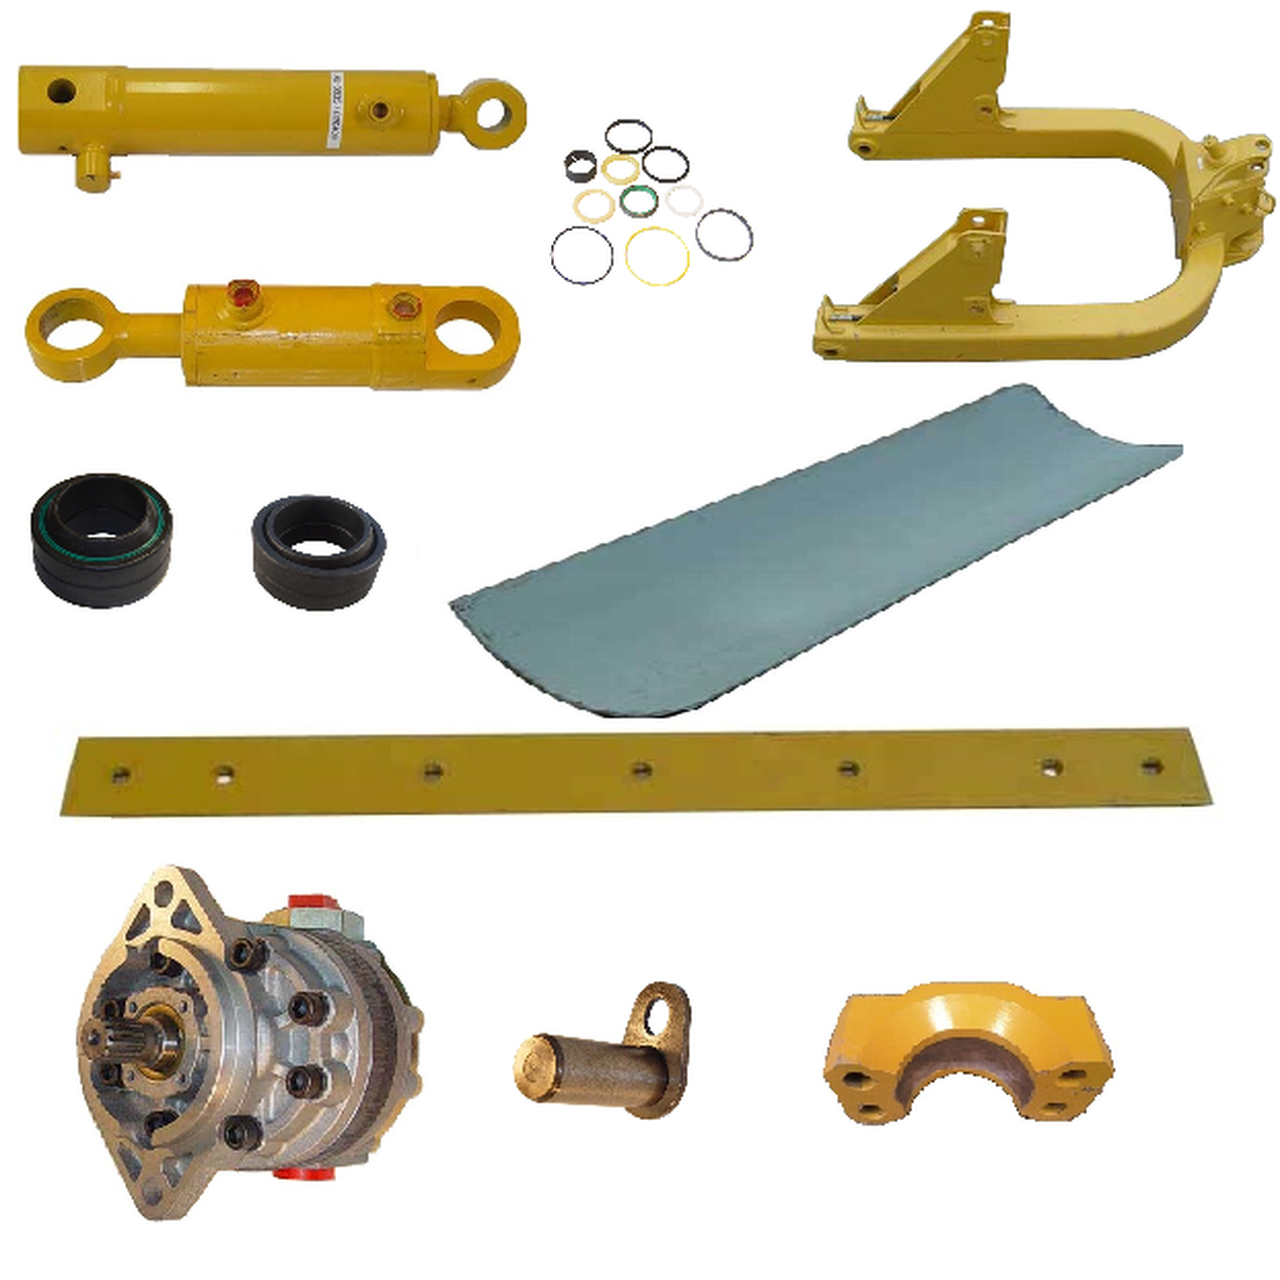 John Deere Dozer & After Market Parts | Deere Parts at